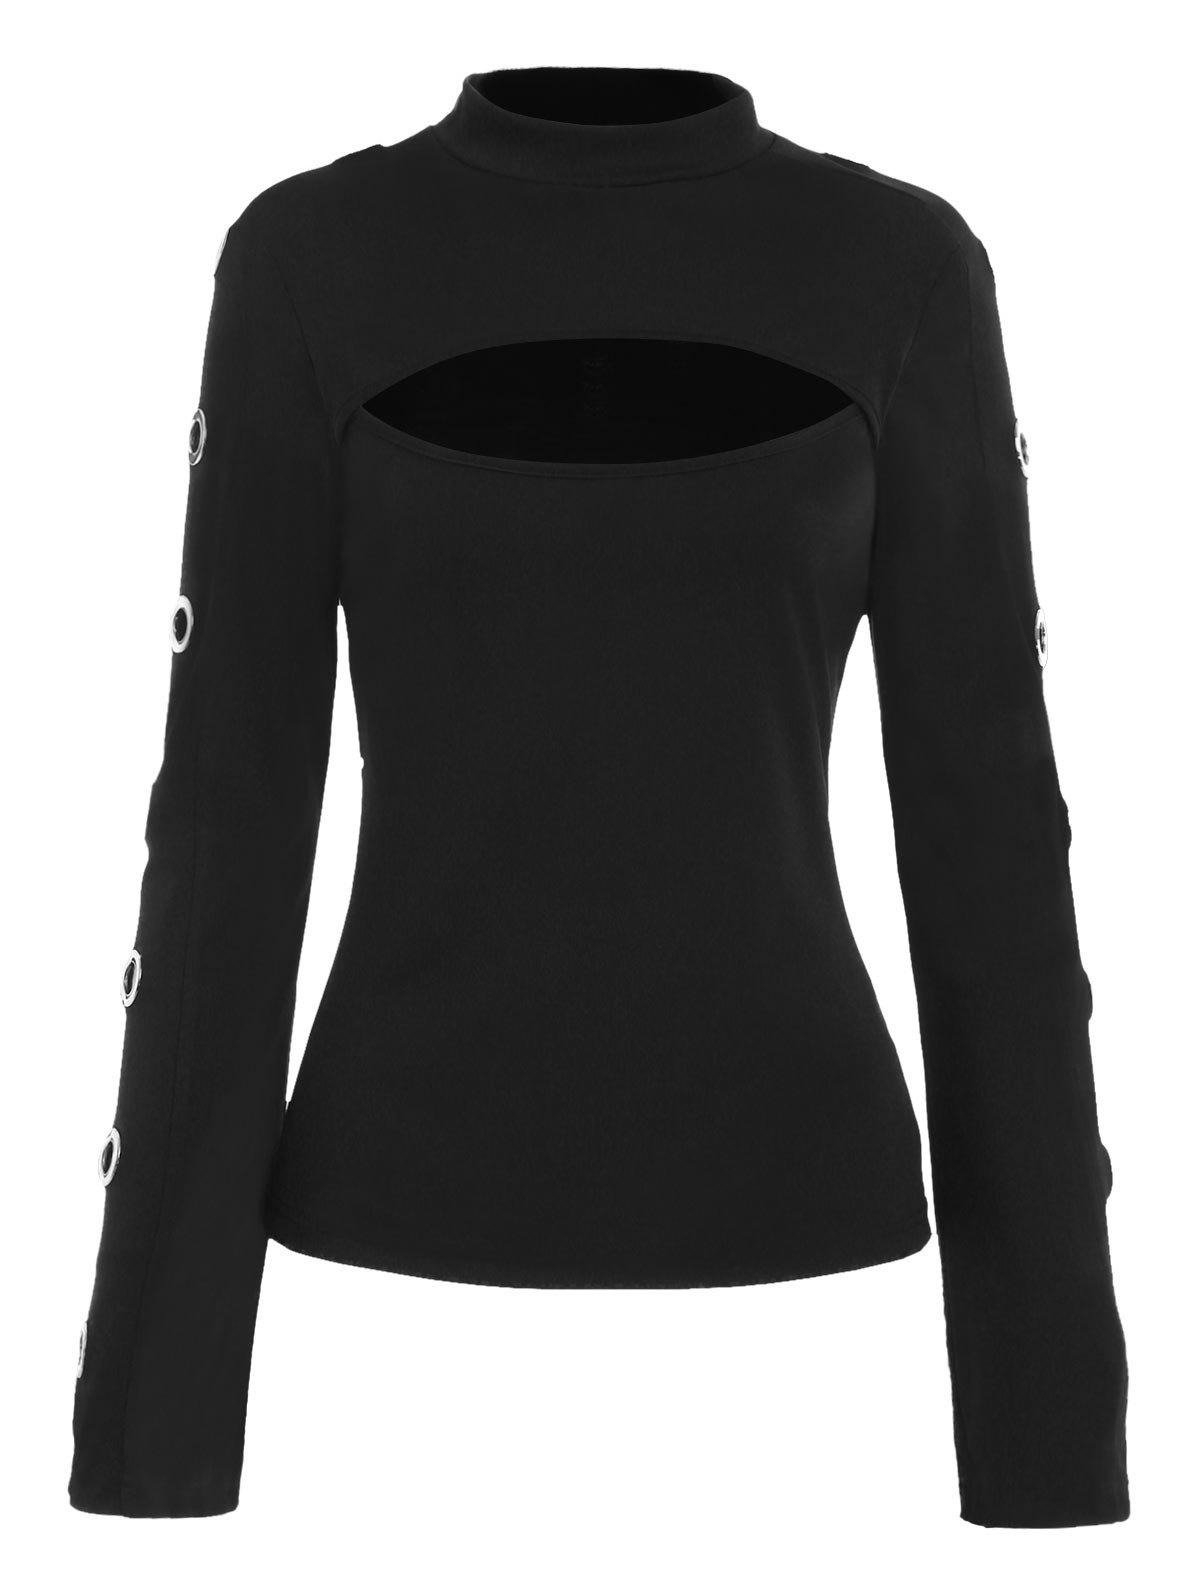 Online Cool Grommets Embellished Full Sleeve T-shirt